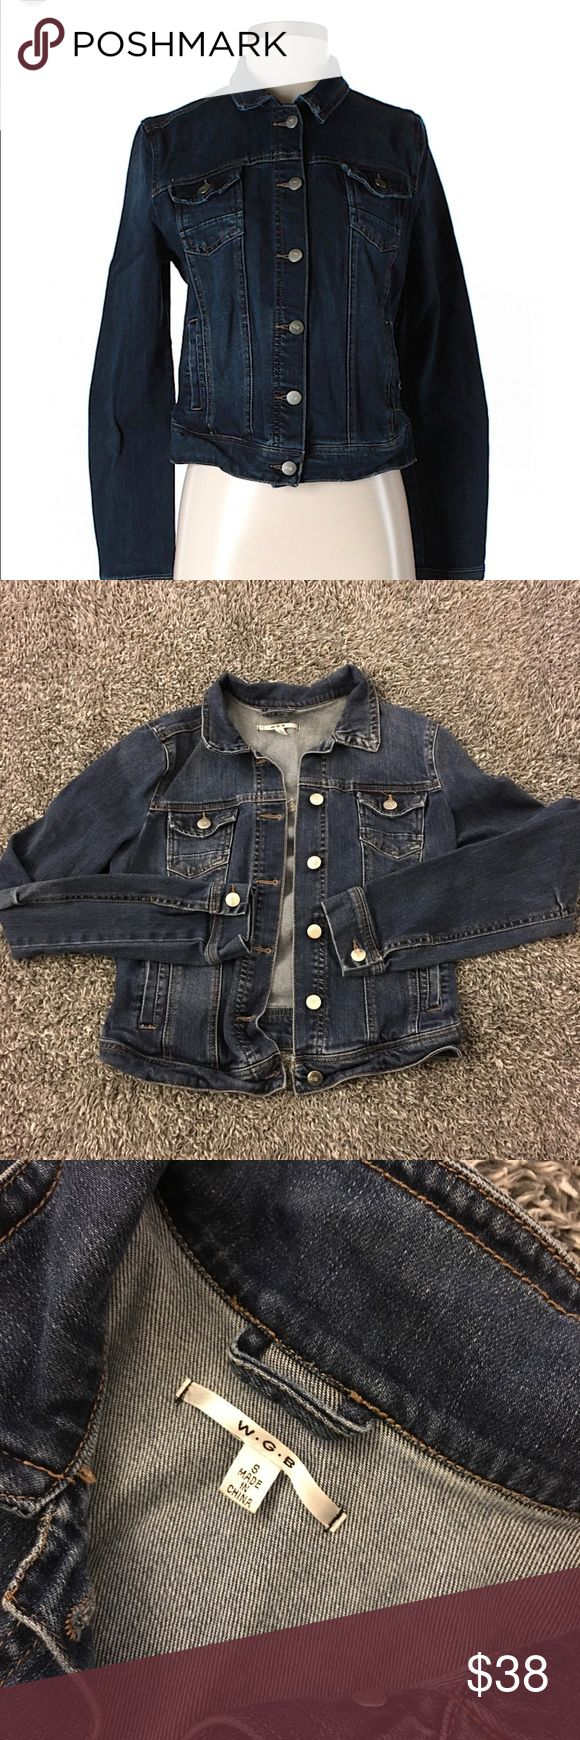 W. G. B. (By Walter Baker) Denim Jacket!! Gently used jacket by Walter Baker. Perfect for layering year round. I found nothing major wrong with this item. May have overlooked something but that just means there  is nothing obviously wrong. G8 shape & SF. Please see the pics for details, condition & measurements. Has 4 front pockets & some natural fade. Cropped style & prob fits best a Jr. small?! See measurements! Questions? Ask! Offers/bundles  but please  models, lowballs (Posh takes a…